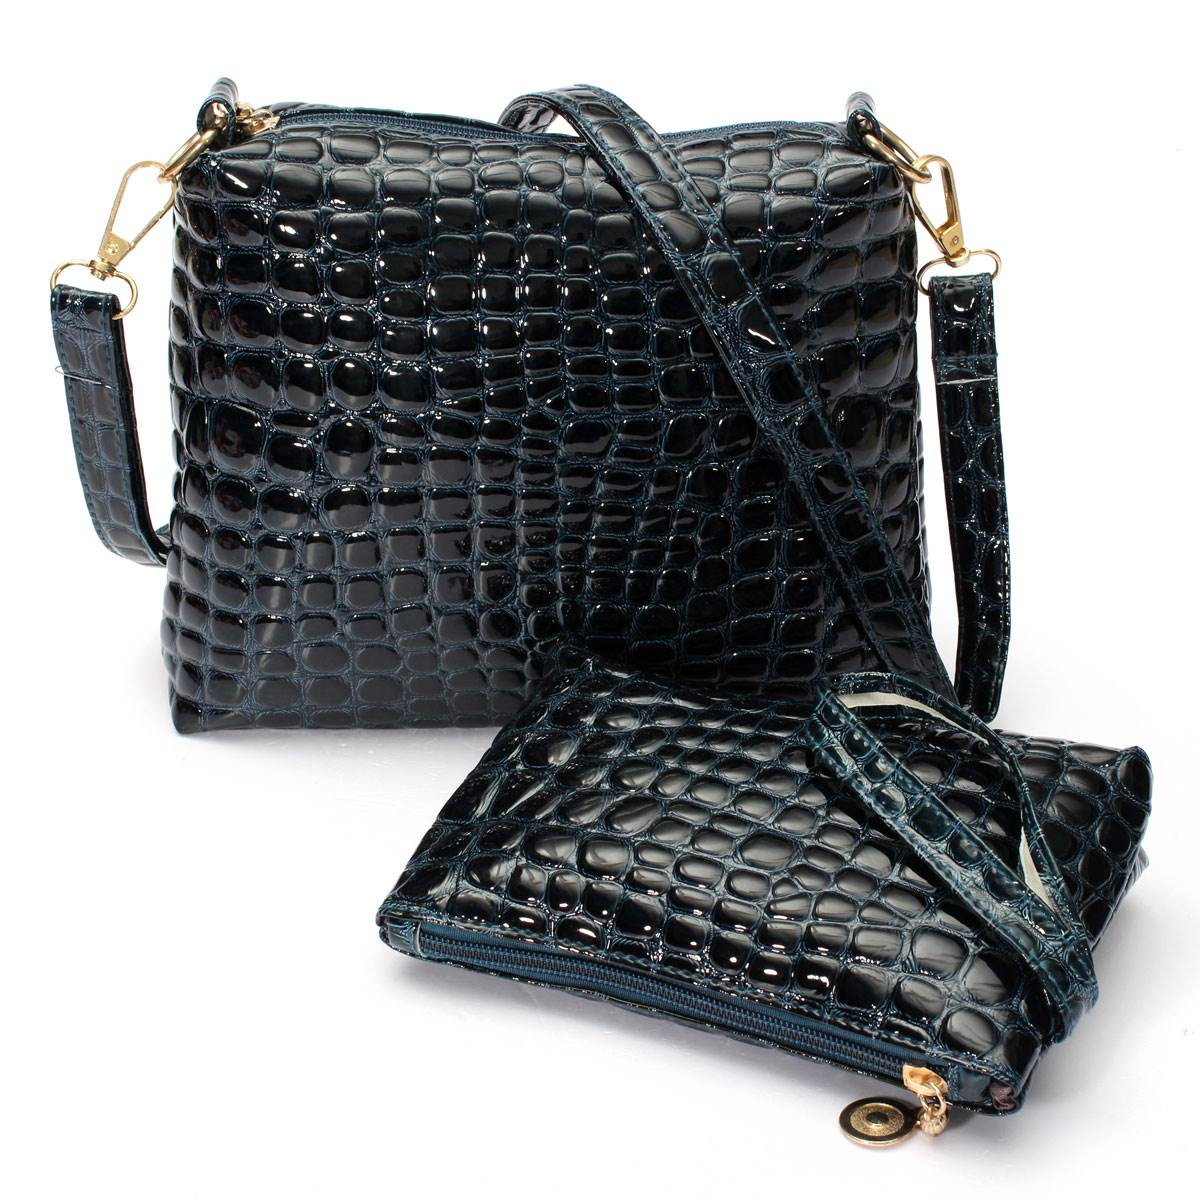 2015 Women Messenger Shoulder Bag Crocodile PU Leather Casual Crossbody Quilted Bags Set Women Clutch Composite Handbags<br><br>Aliexpress